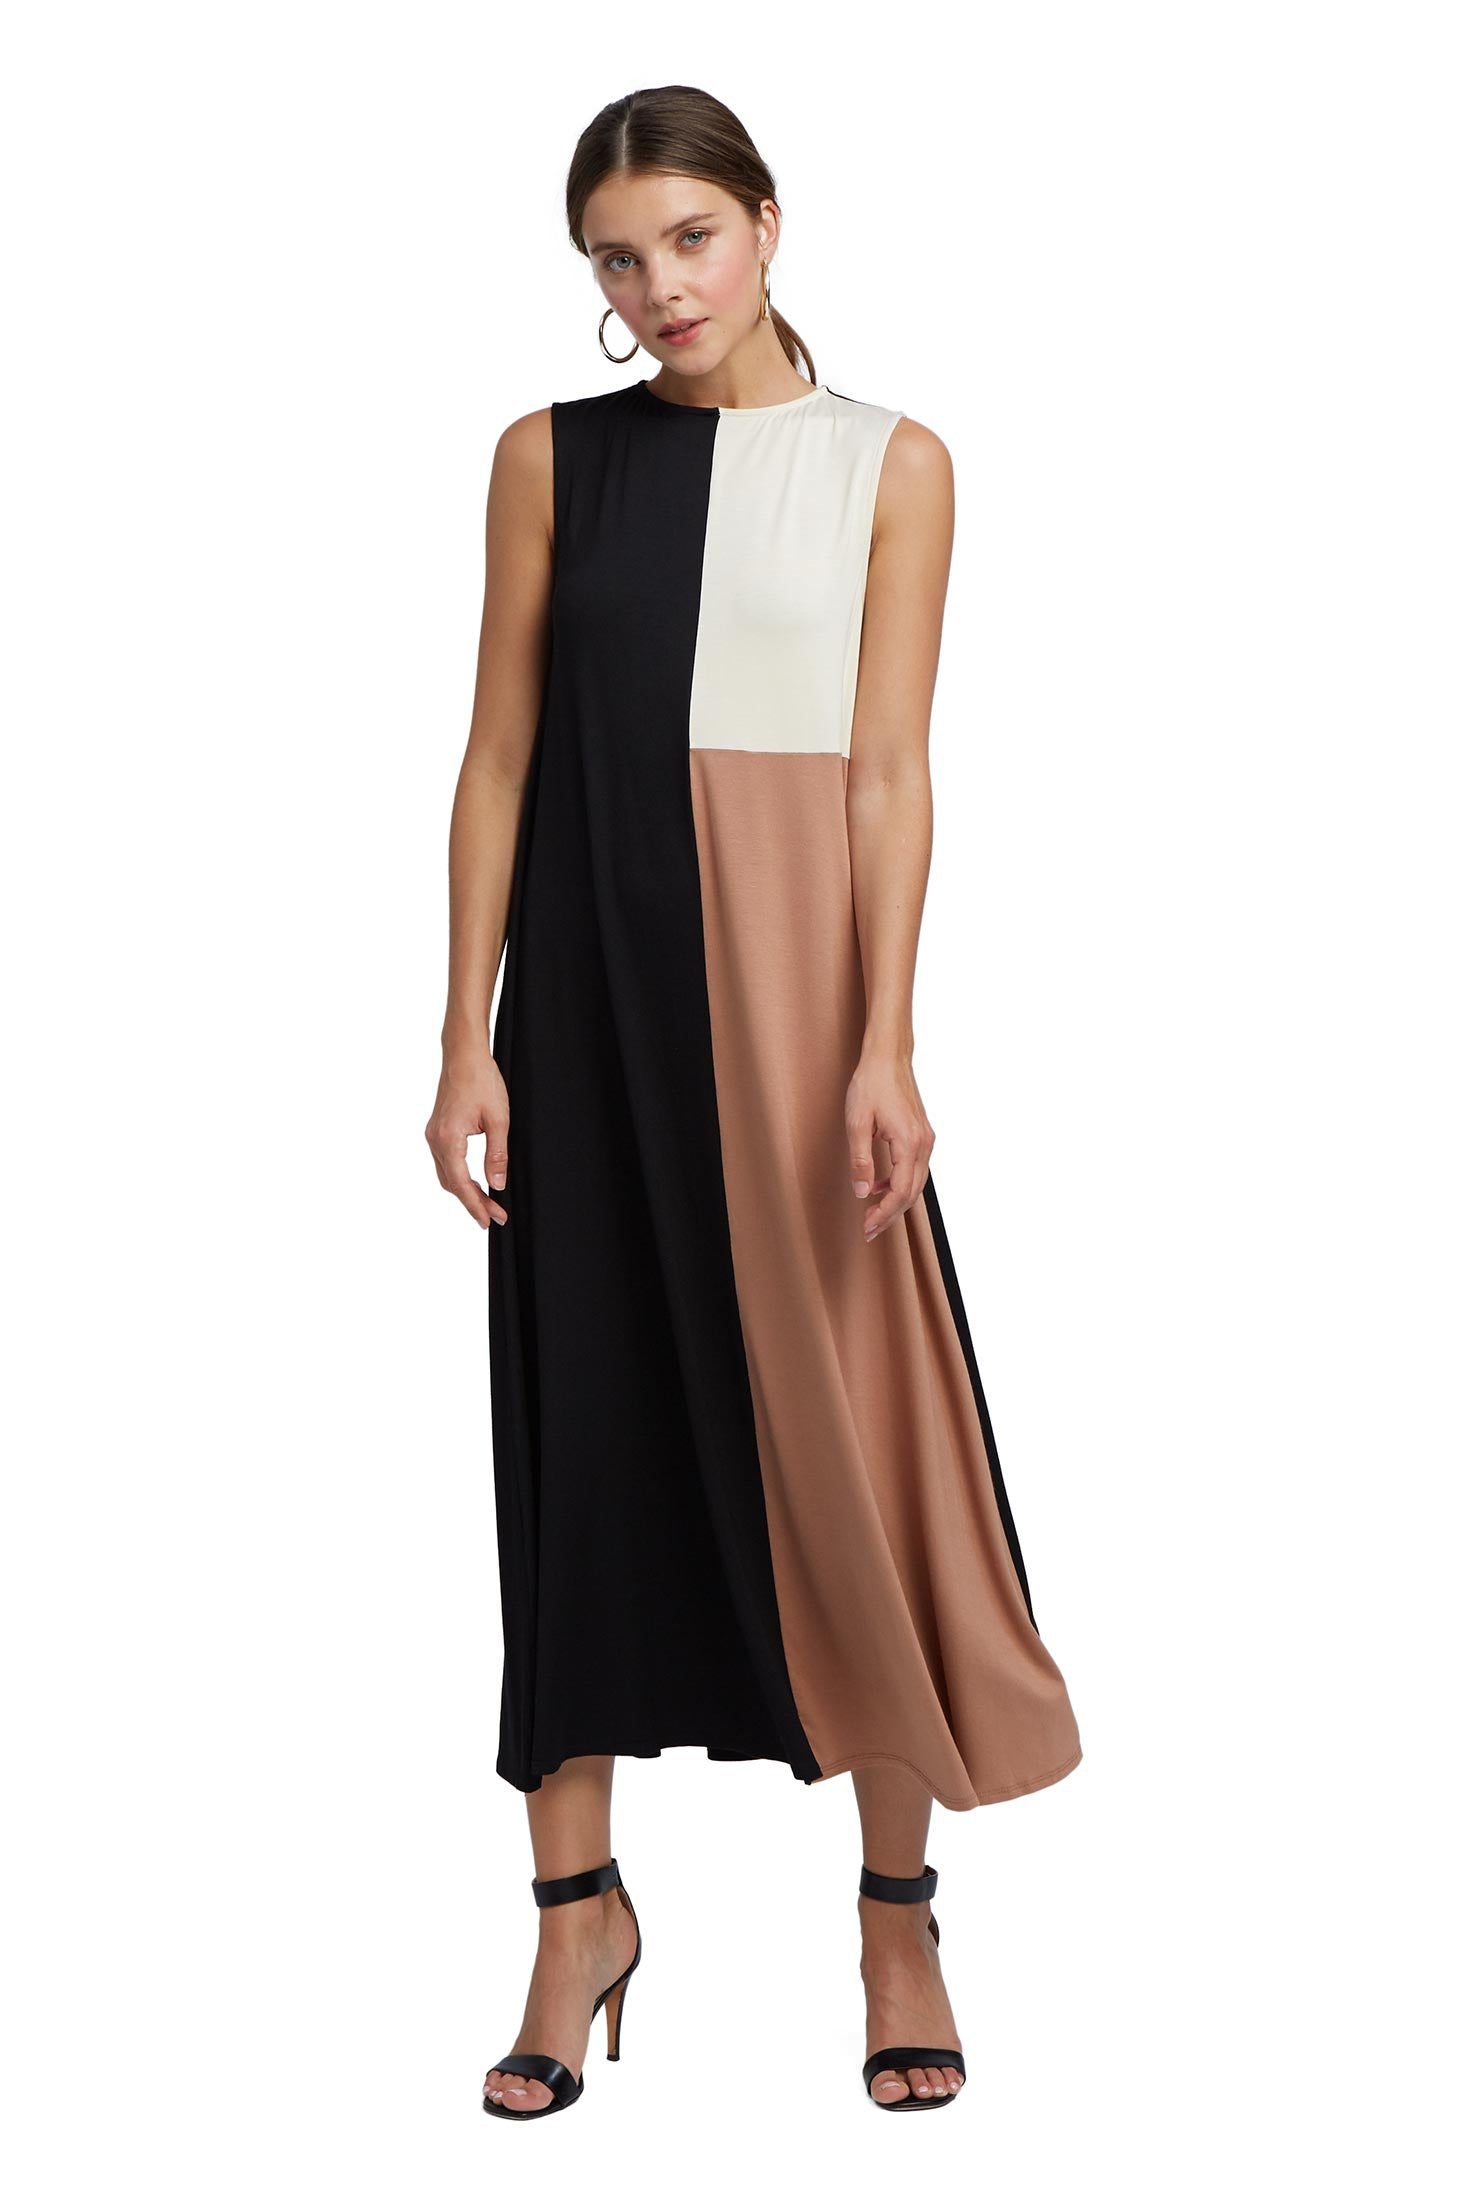 Tricolor Dress - Black / Dulce / Cream